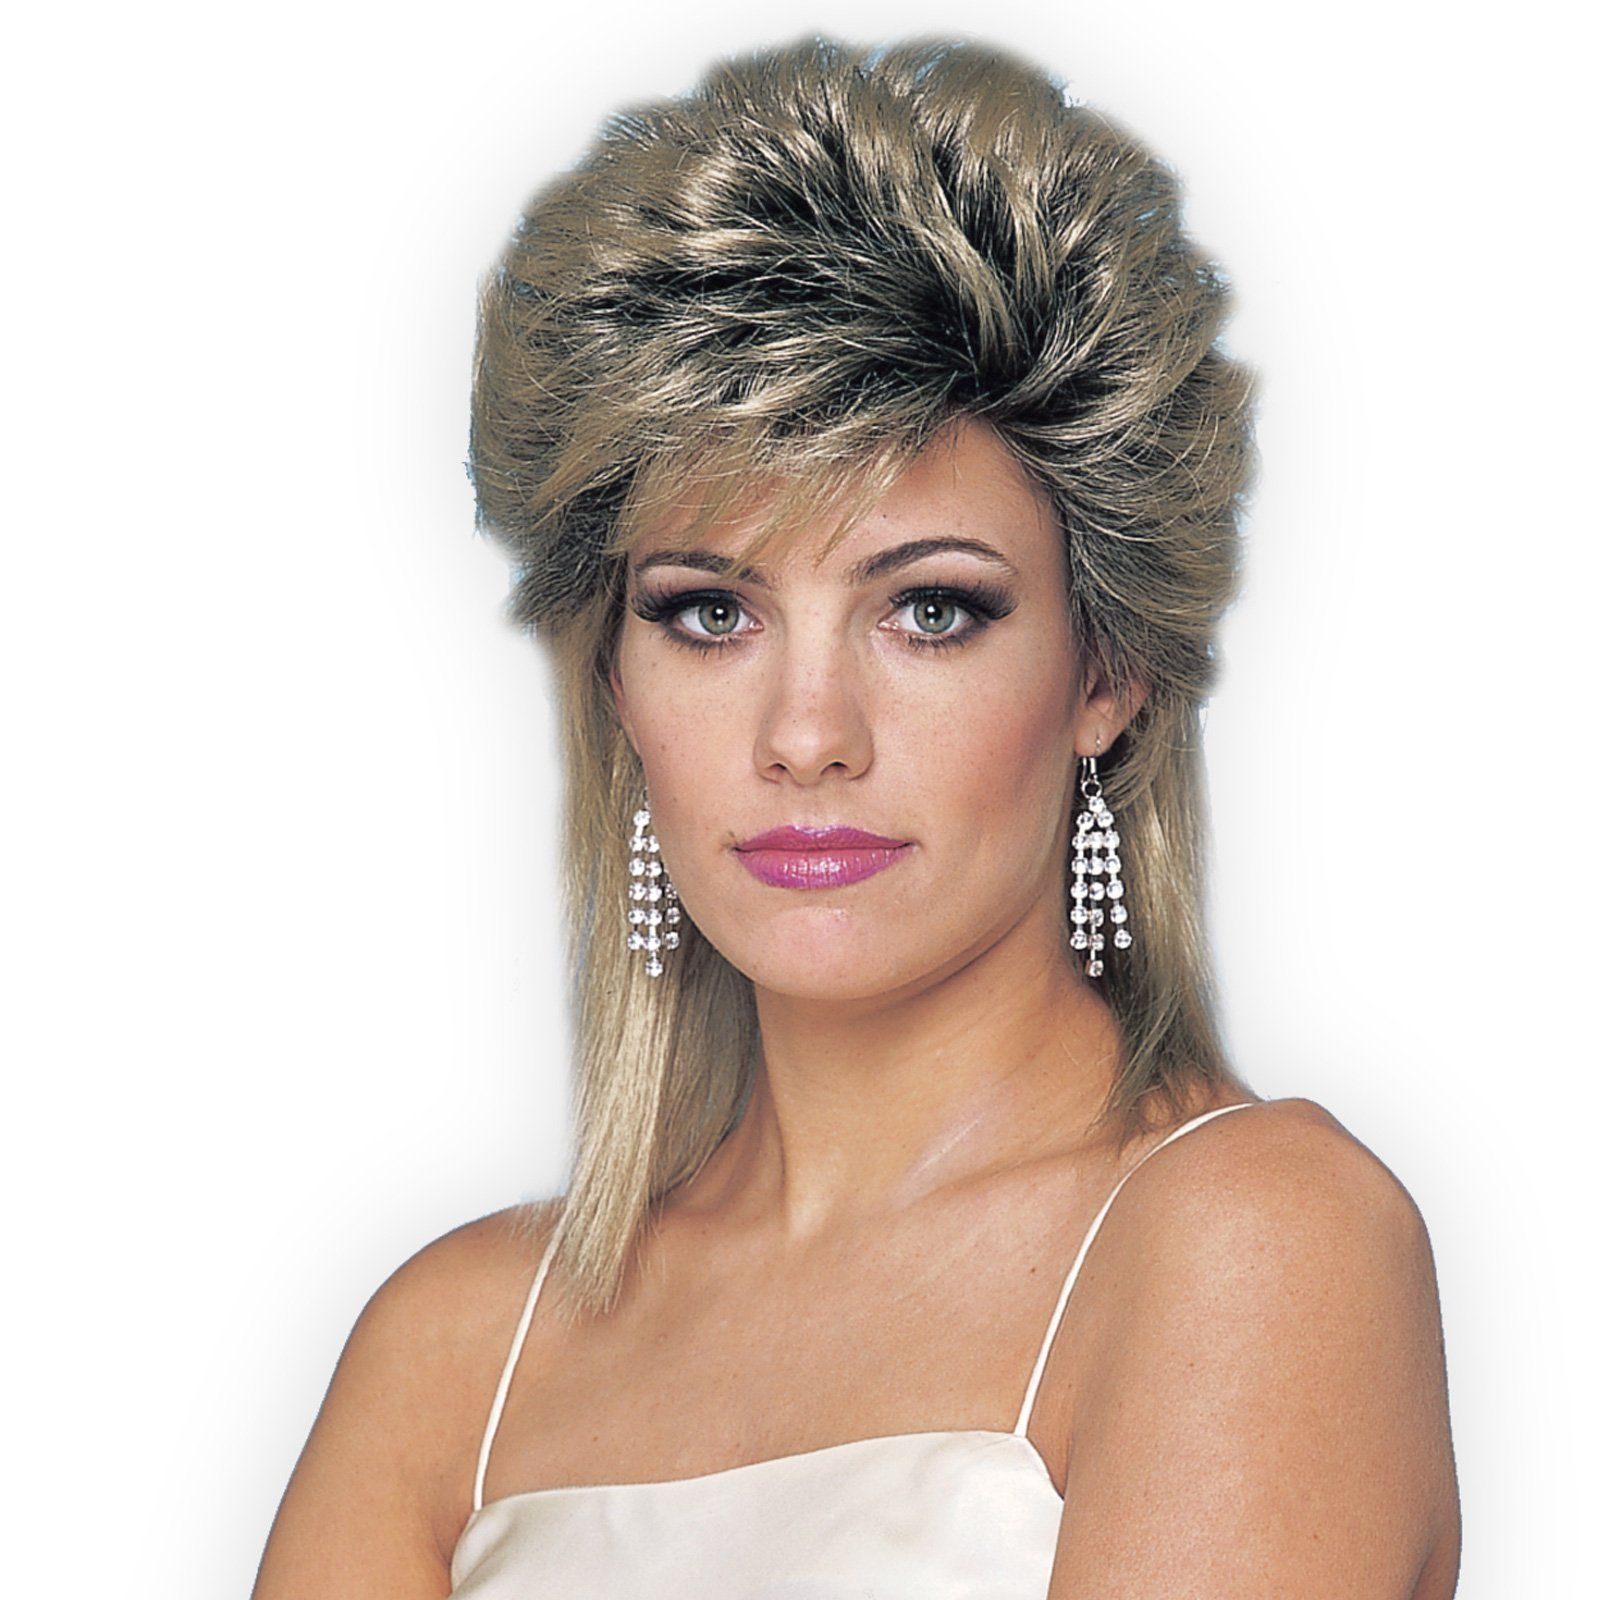 Miraculous 80S Hairstyles Hairstyles And Colors On Pinterest Hairstyle Inspiration Daily Dogsangcom